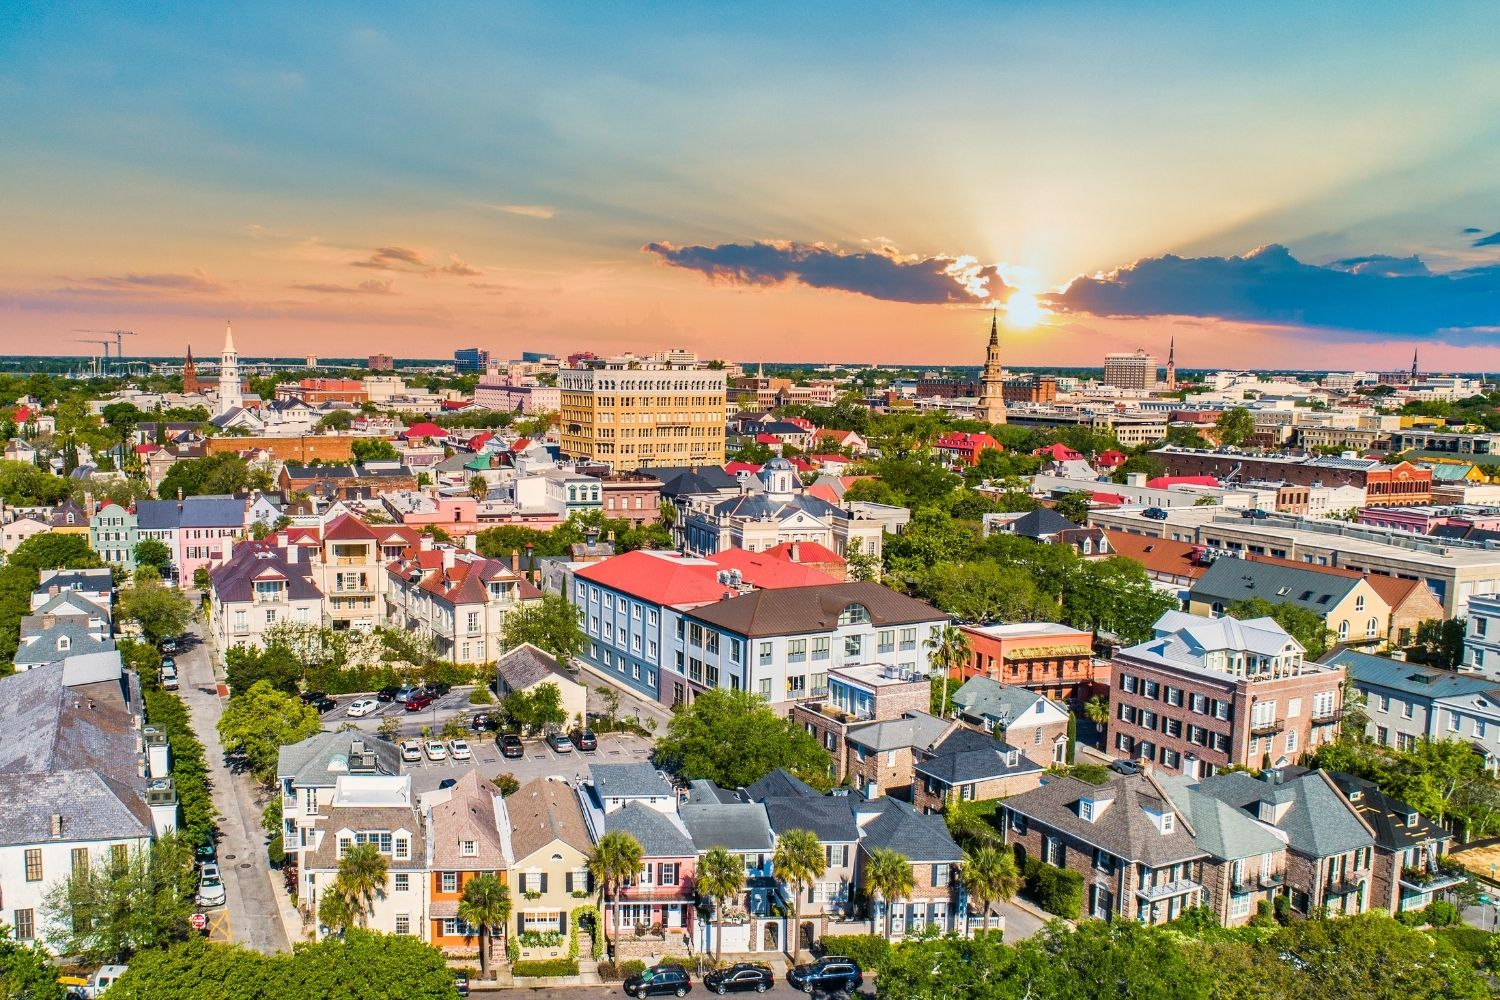 Romantic-Residential-Neighborhoods-of-Charleston-1 Experiencing the Charms of Charleston